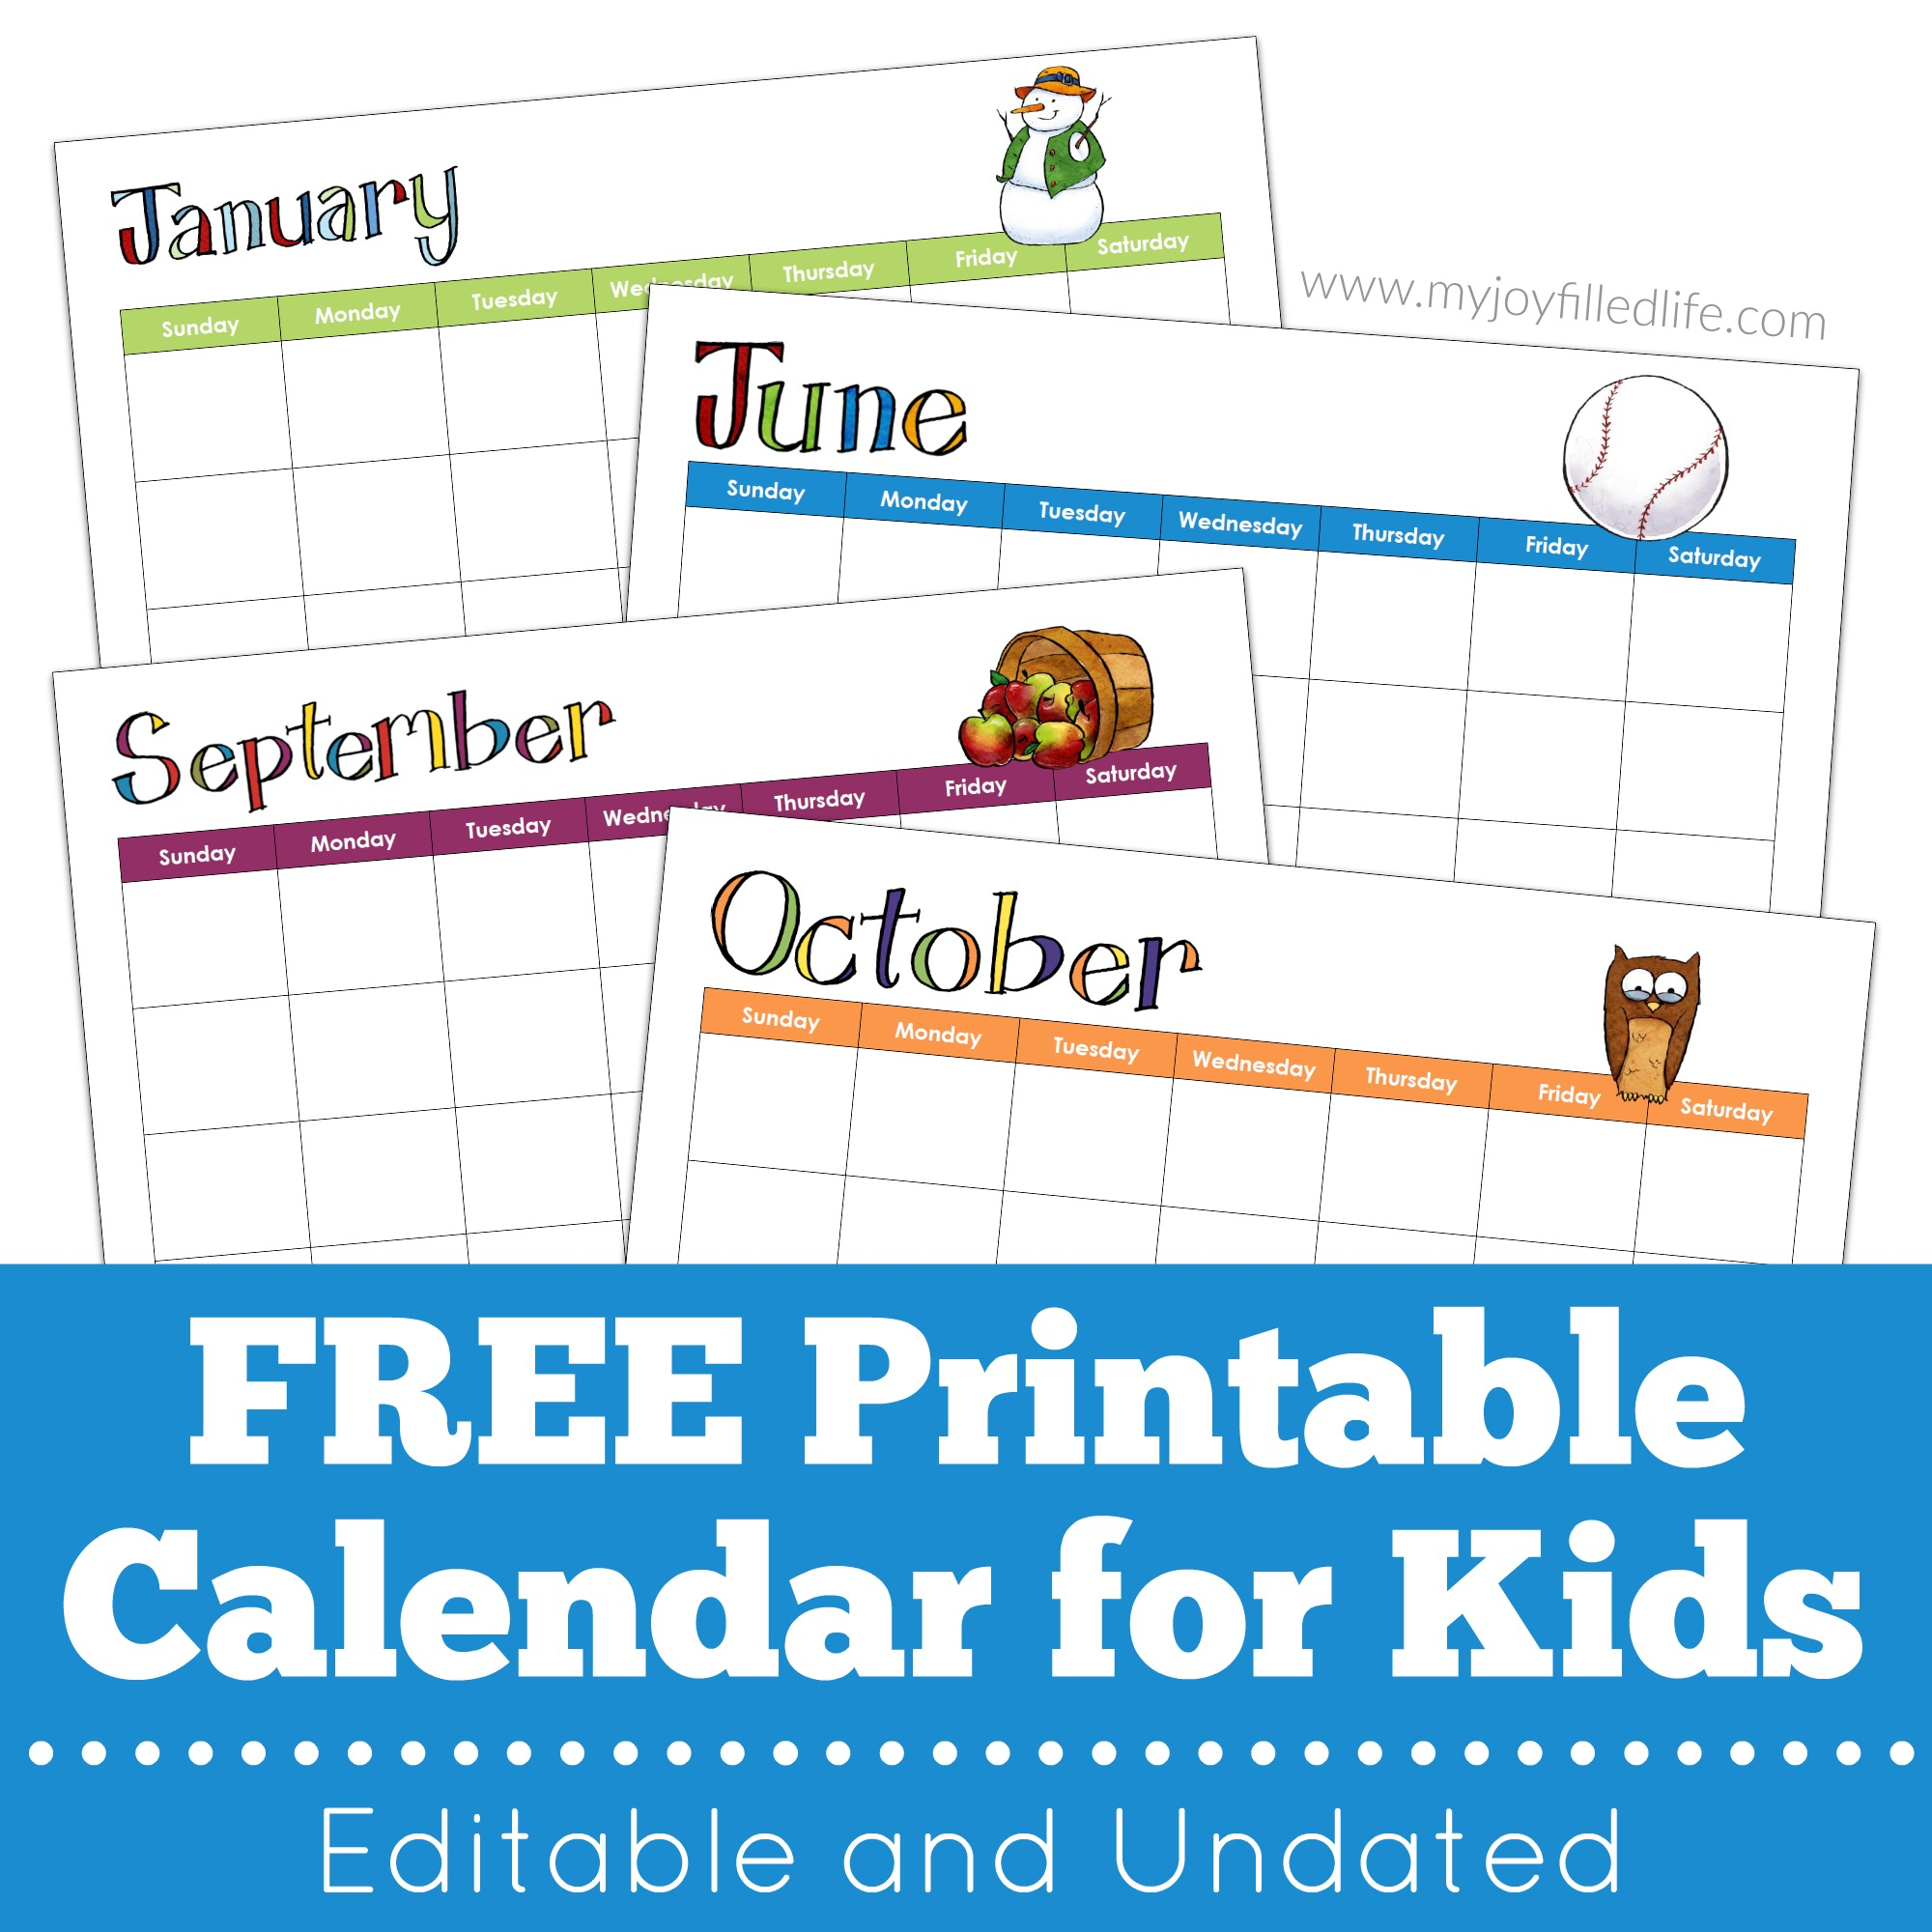 Free Printable Calendar For Kids – Editable & Undated - My